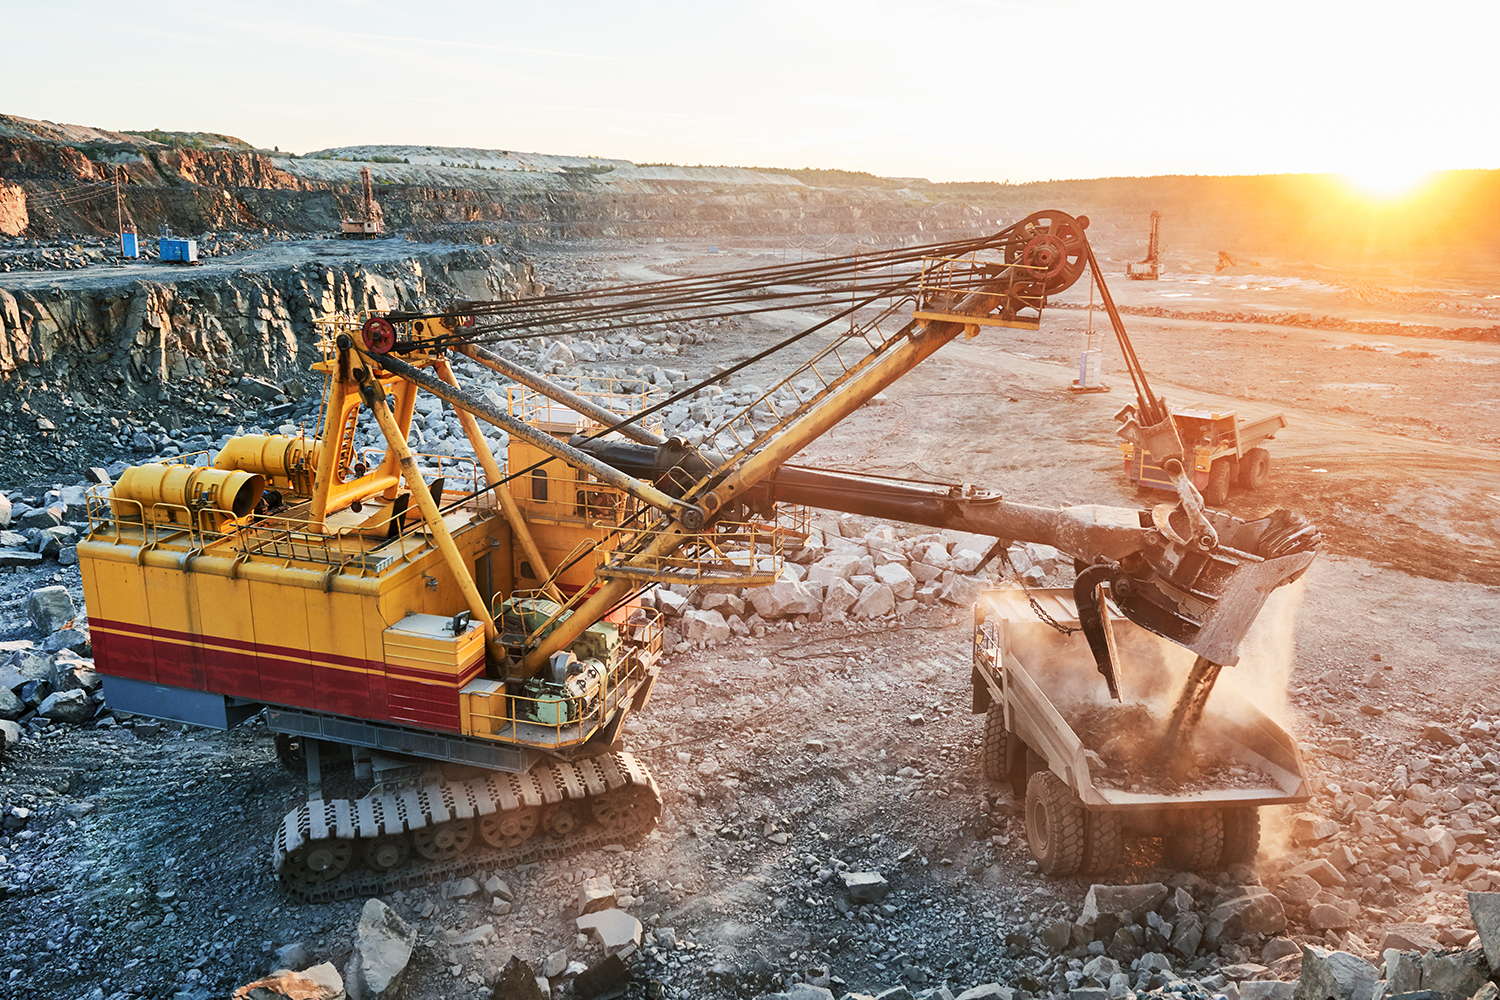 BAUMA 2019 will see wide range of Altra power transmission solutions